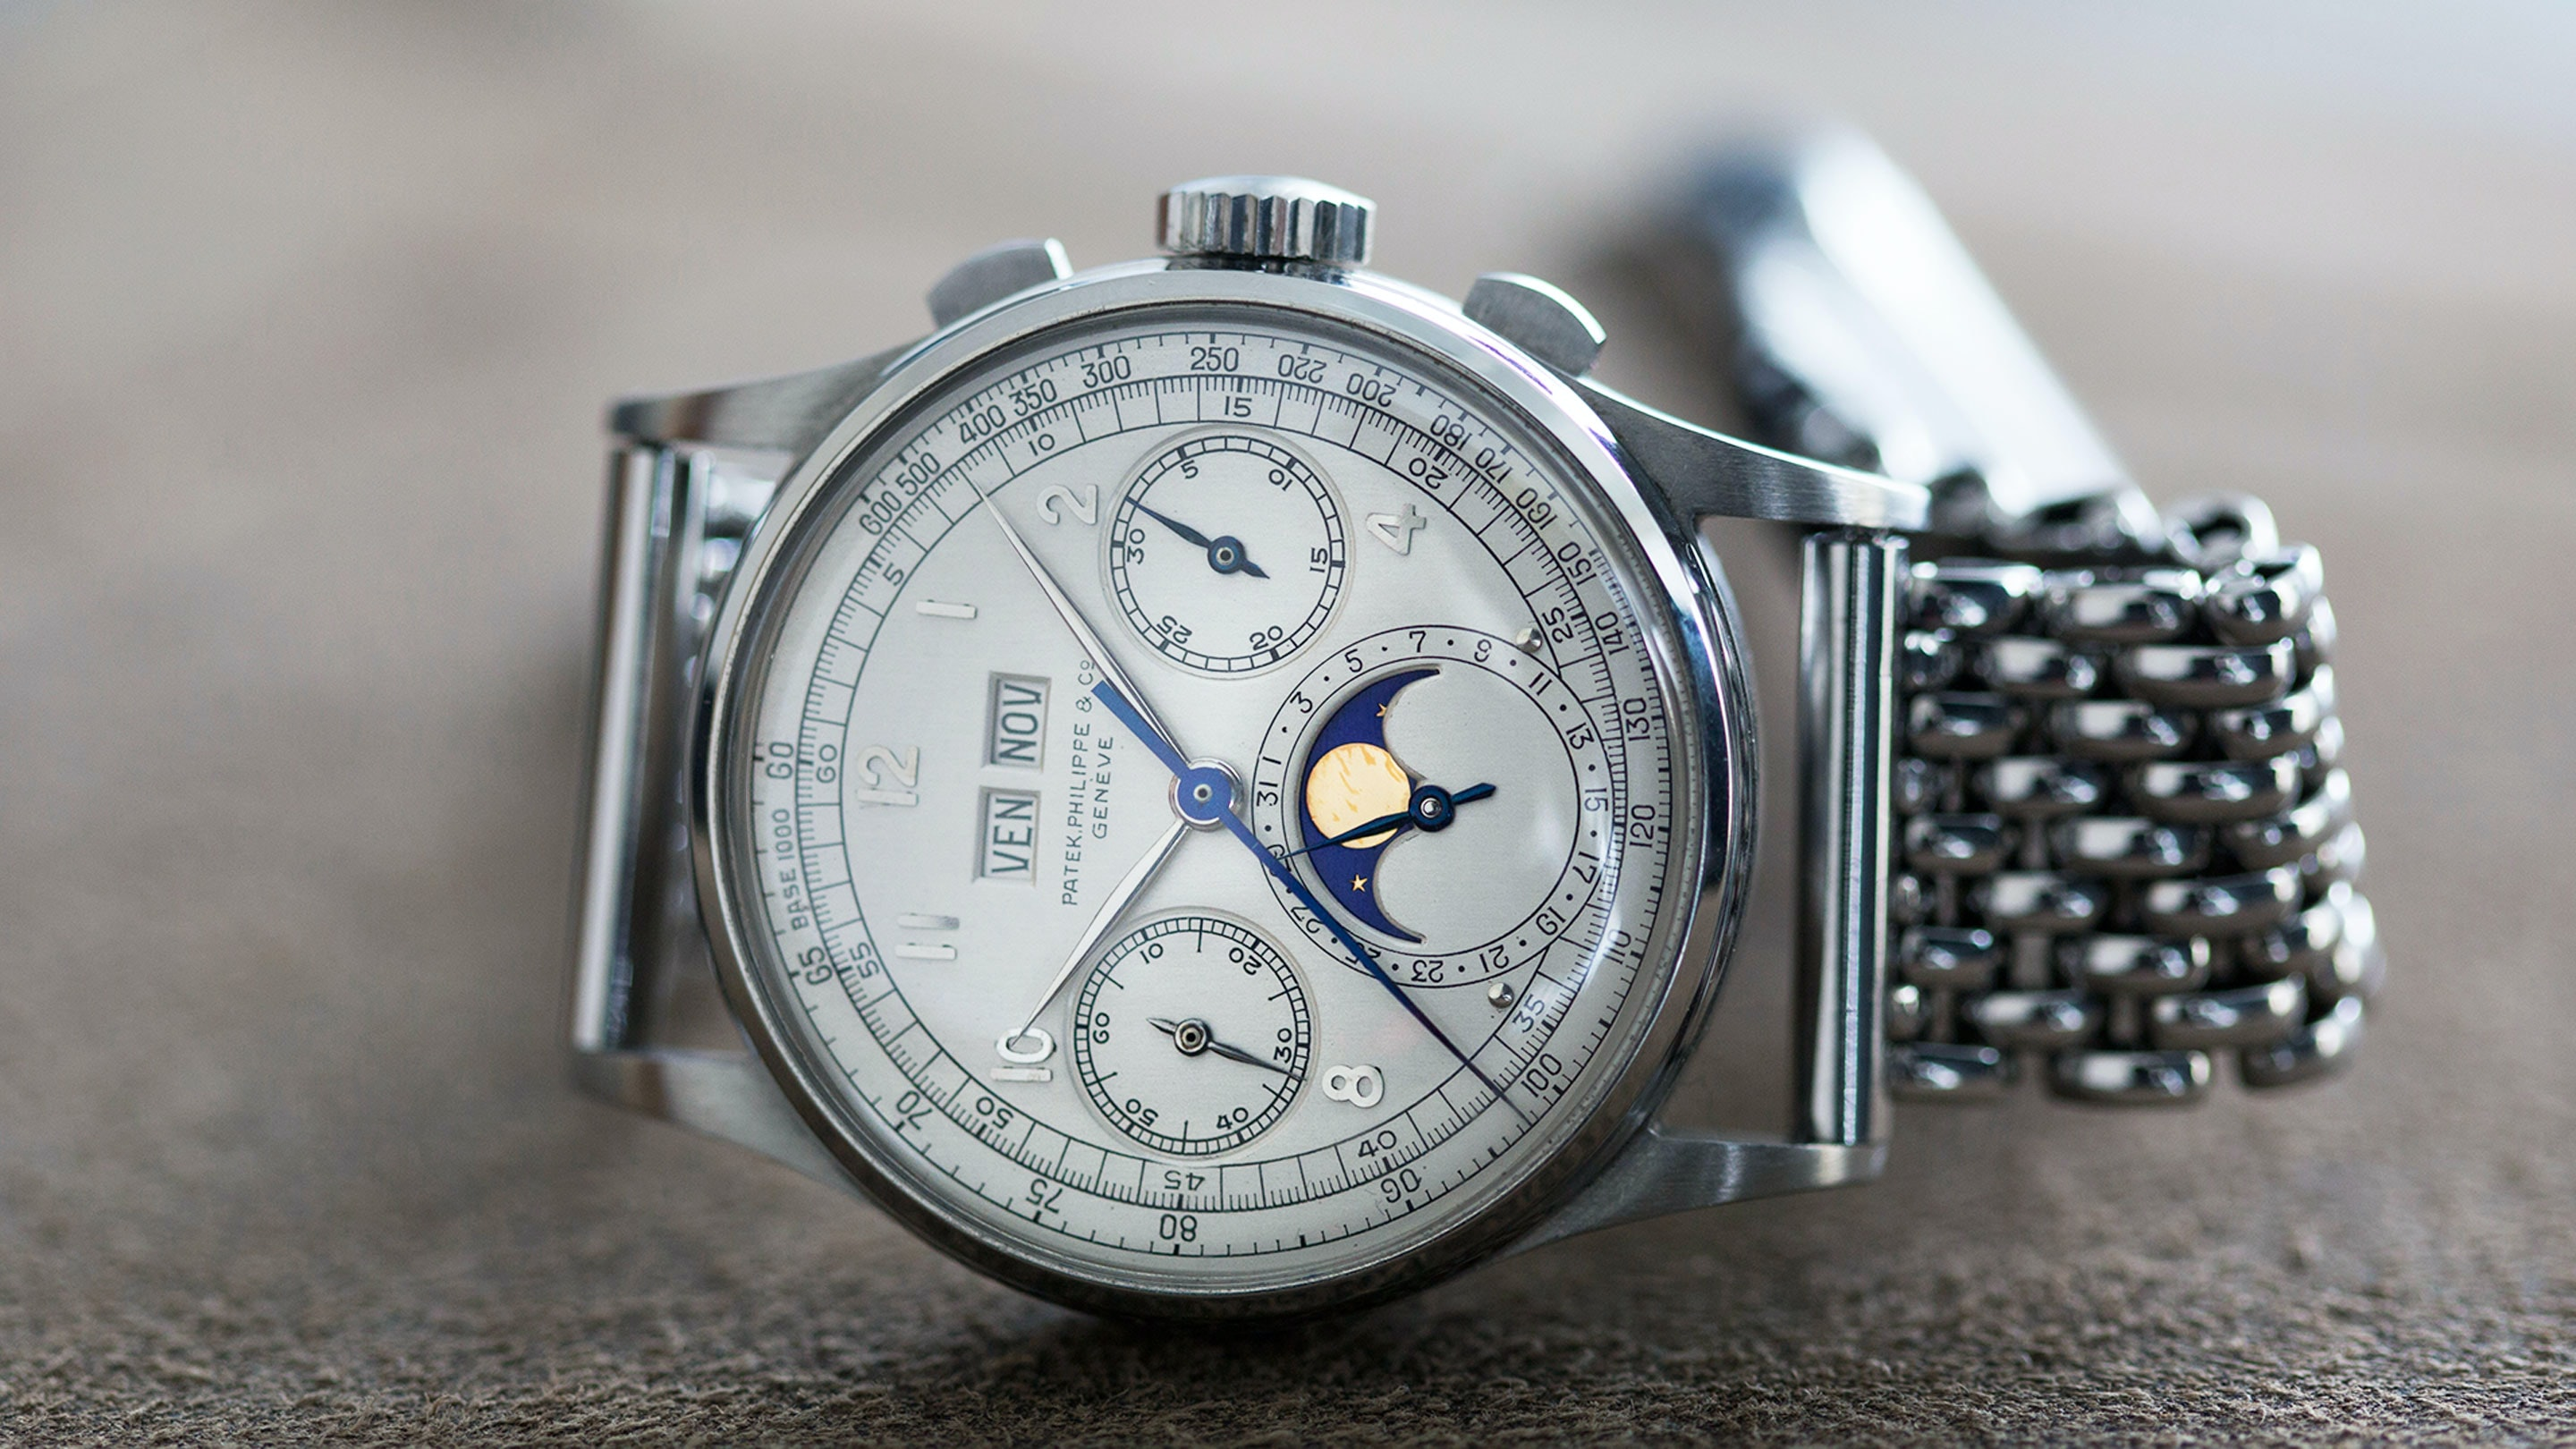 Breaking News: Stainless Steel Patek Philippe Ref. 1518 Sells For Over ,000,000 At Phillips Geneva (And Sets A New World Record For ANY Wristwatch) - HODINKEE